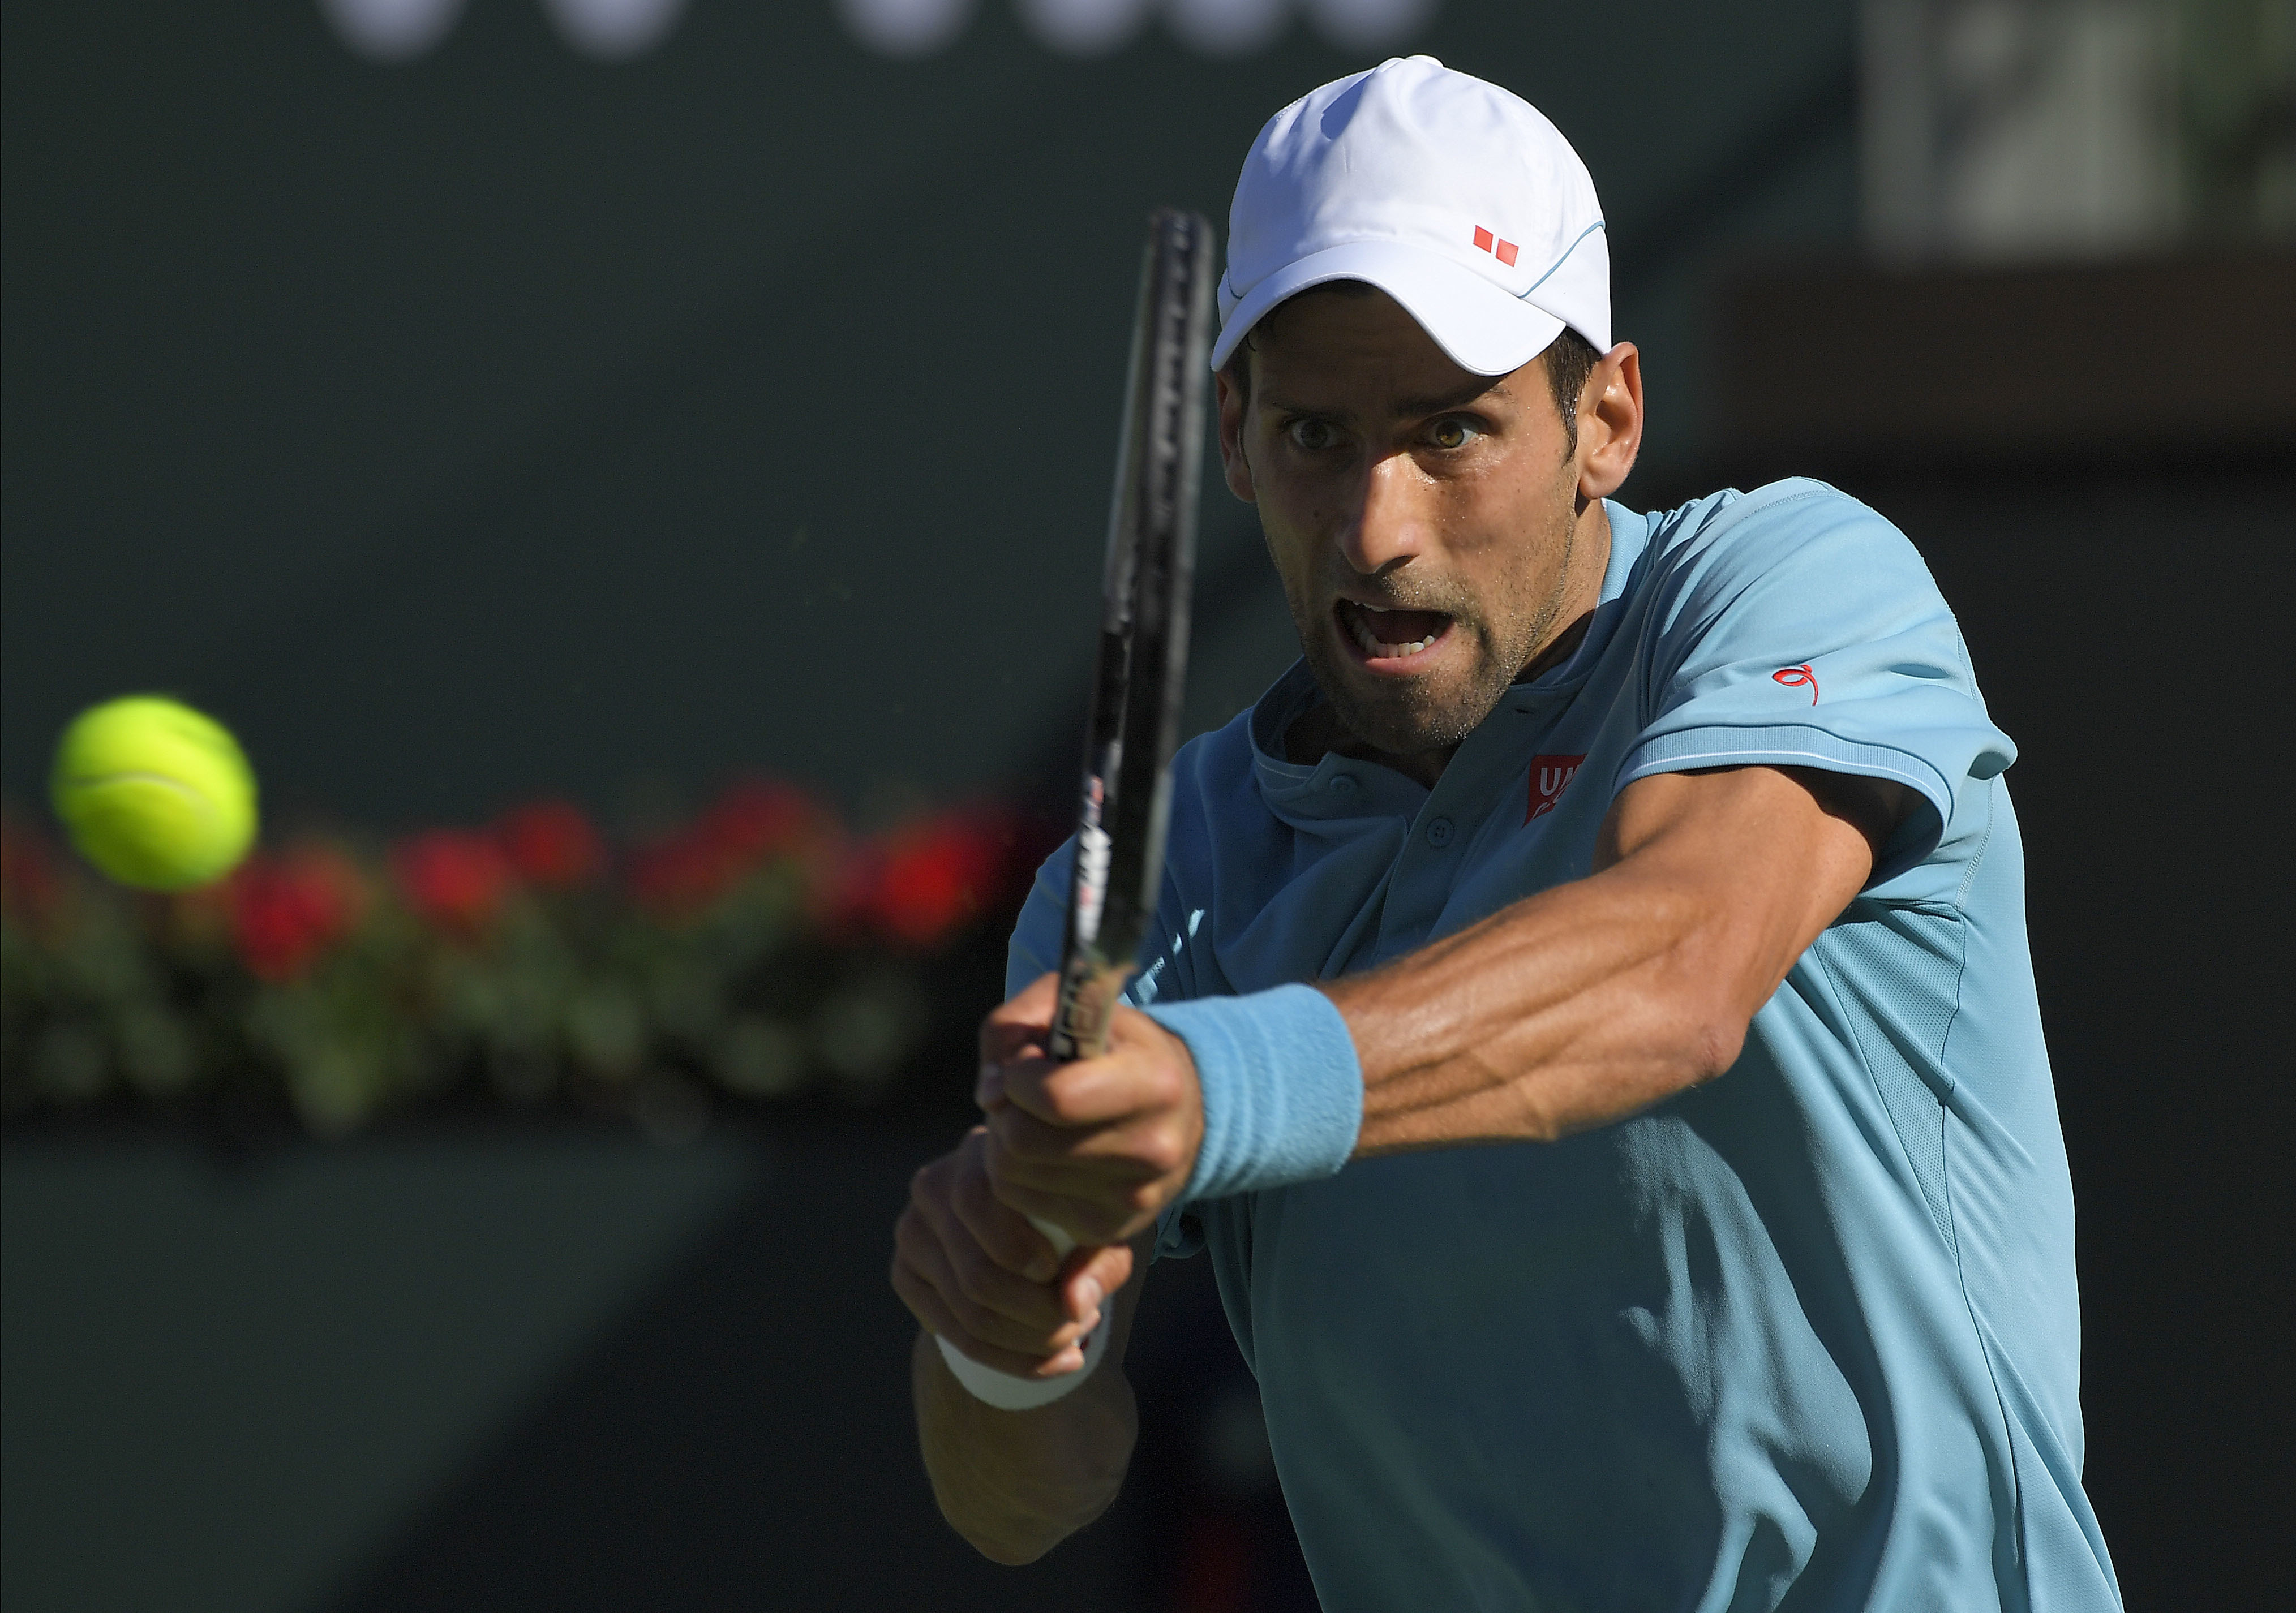 Novak Djokovic, of Serbia, returns a shot to Nick Kyrgios, of Australia, at the BNP Paribas Open tennis tournament, Wednesday, March 15, 2017, in Indian Wells, Calif. (AP Photo/Mark J. Terrill)